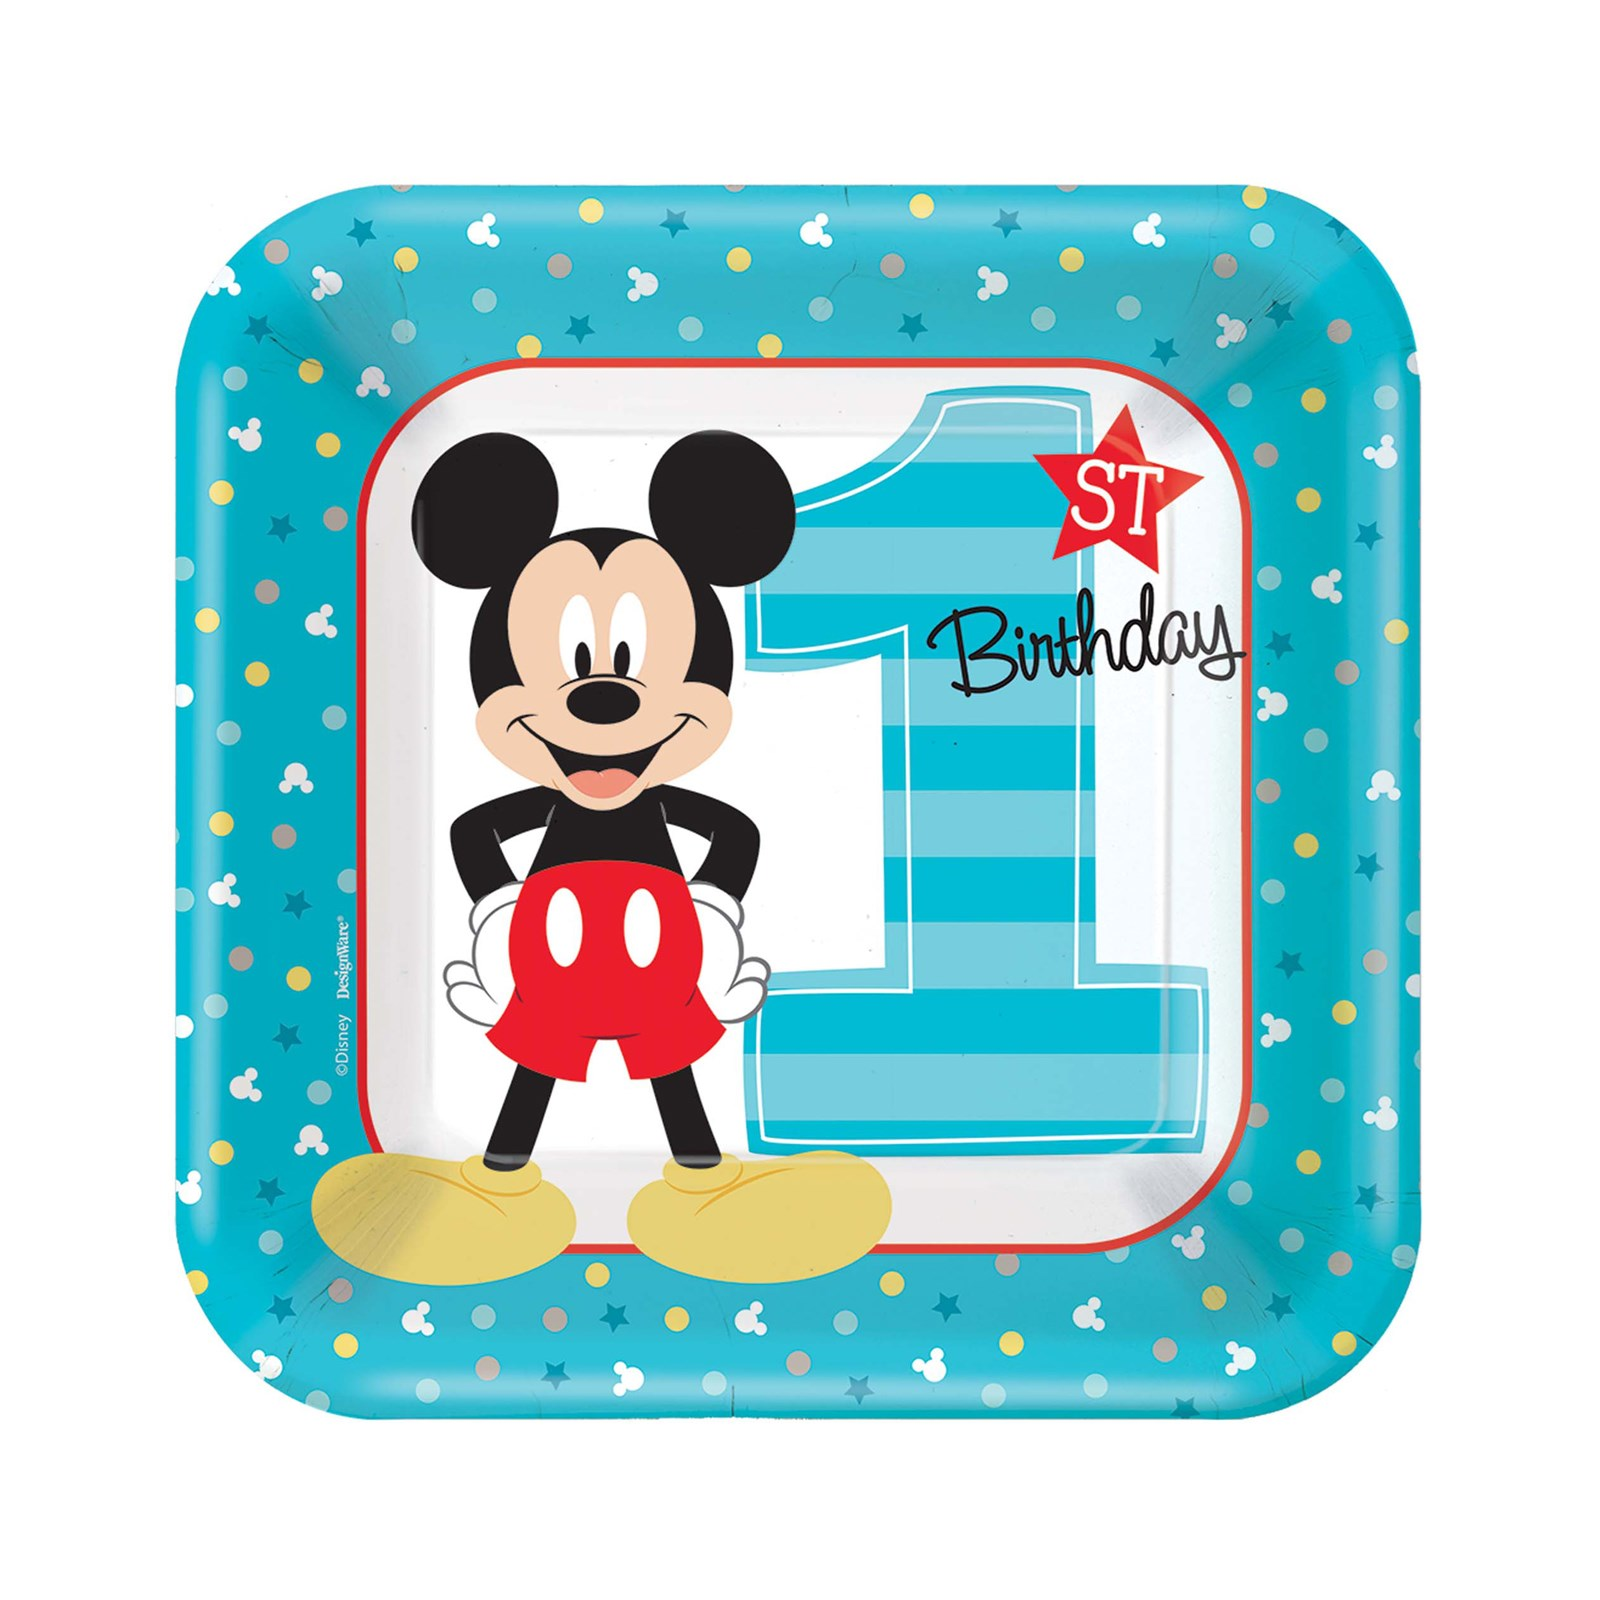 Disney Mickey Mouse 1st Birthday Dessert Plates (8. Black History Month Poster Ideas. Grand Canyon University Graduation. Excel Attendance Sheet Template. Free Personal Check Template. Fascinating Resume Template Word 2007. Church Meeting Minutes Template. Employee Training Plan Template. Basic Project Plan Template